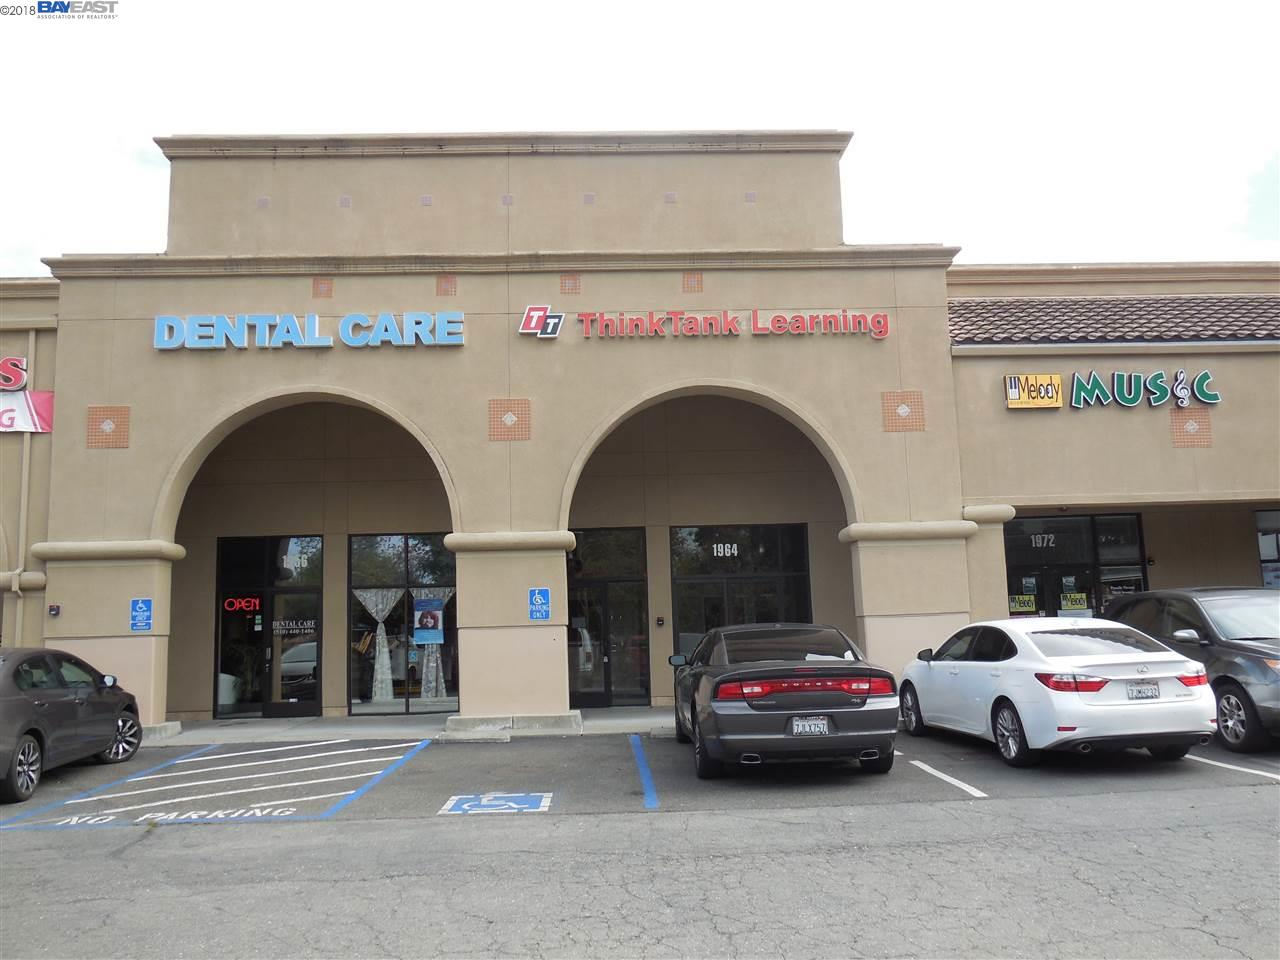 Commercial for Sale at 1964 Driscoll Road 1964 Driscoll Road Fremont, California 94539 United States